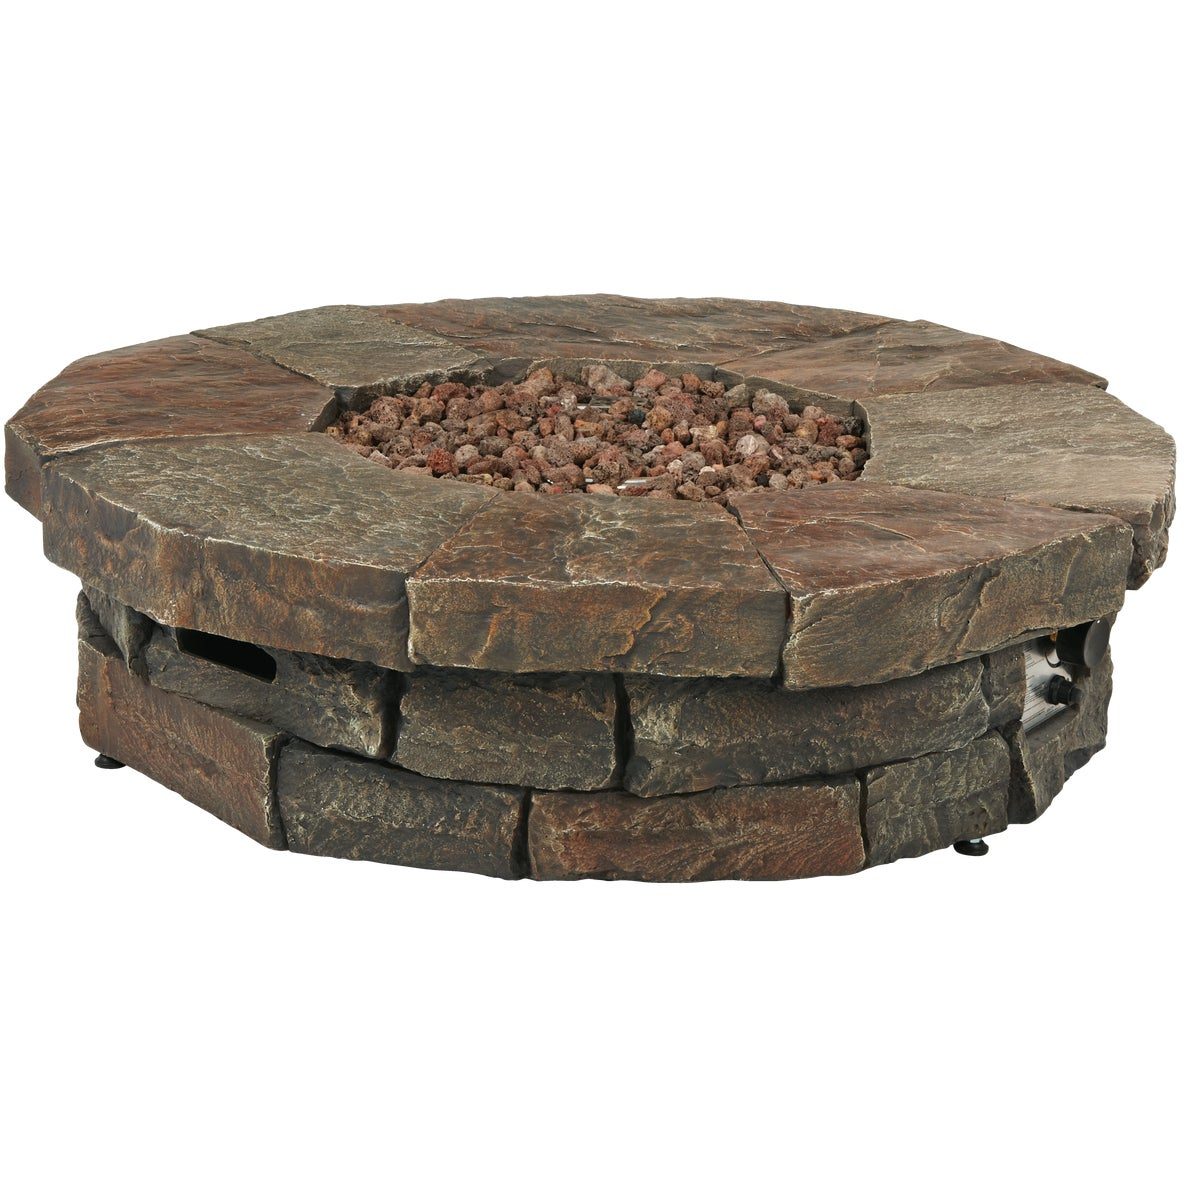 CLEARWATER GAS FIRETABLE